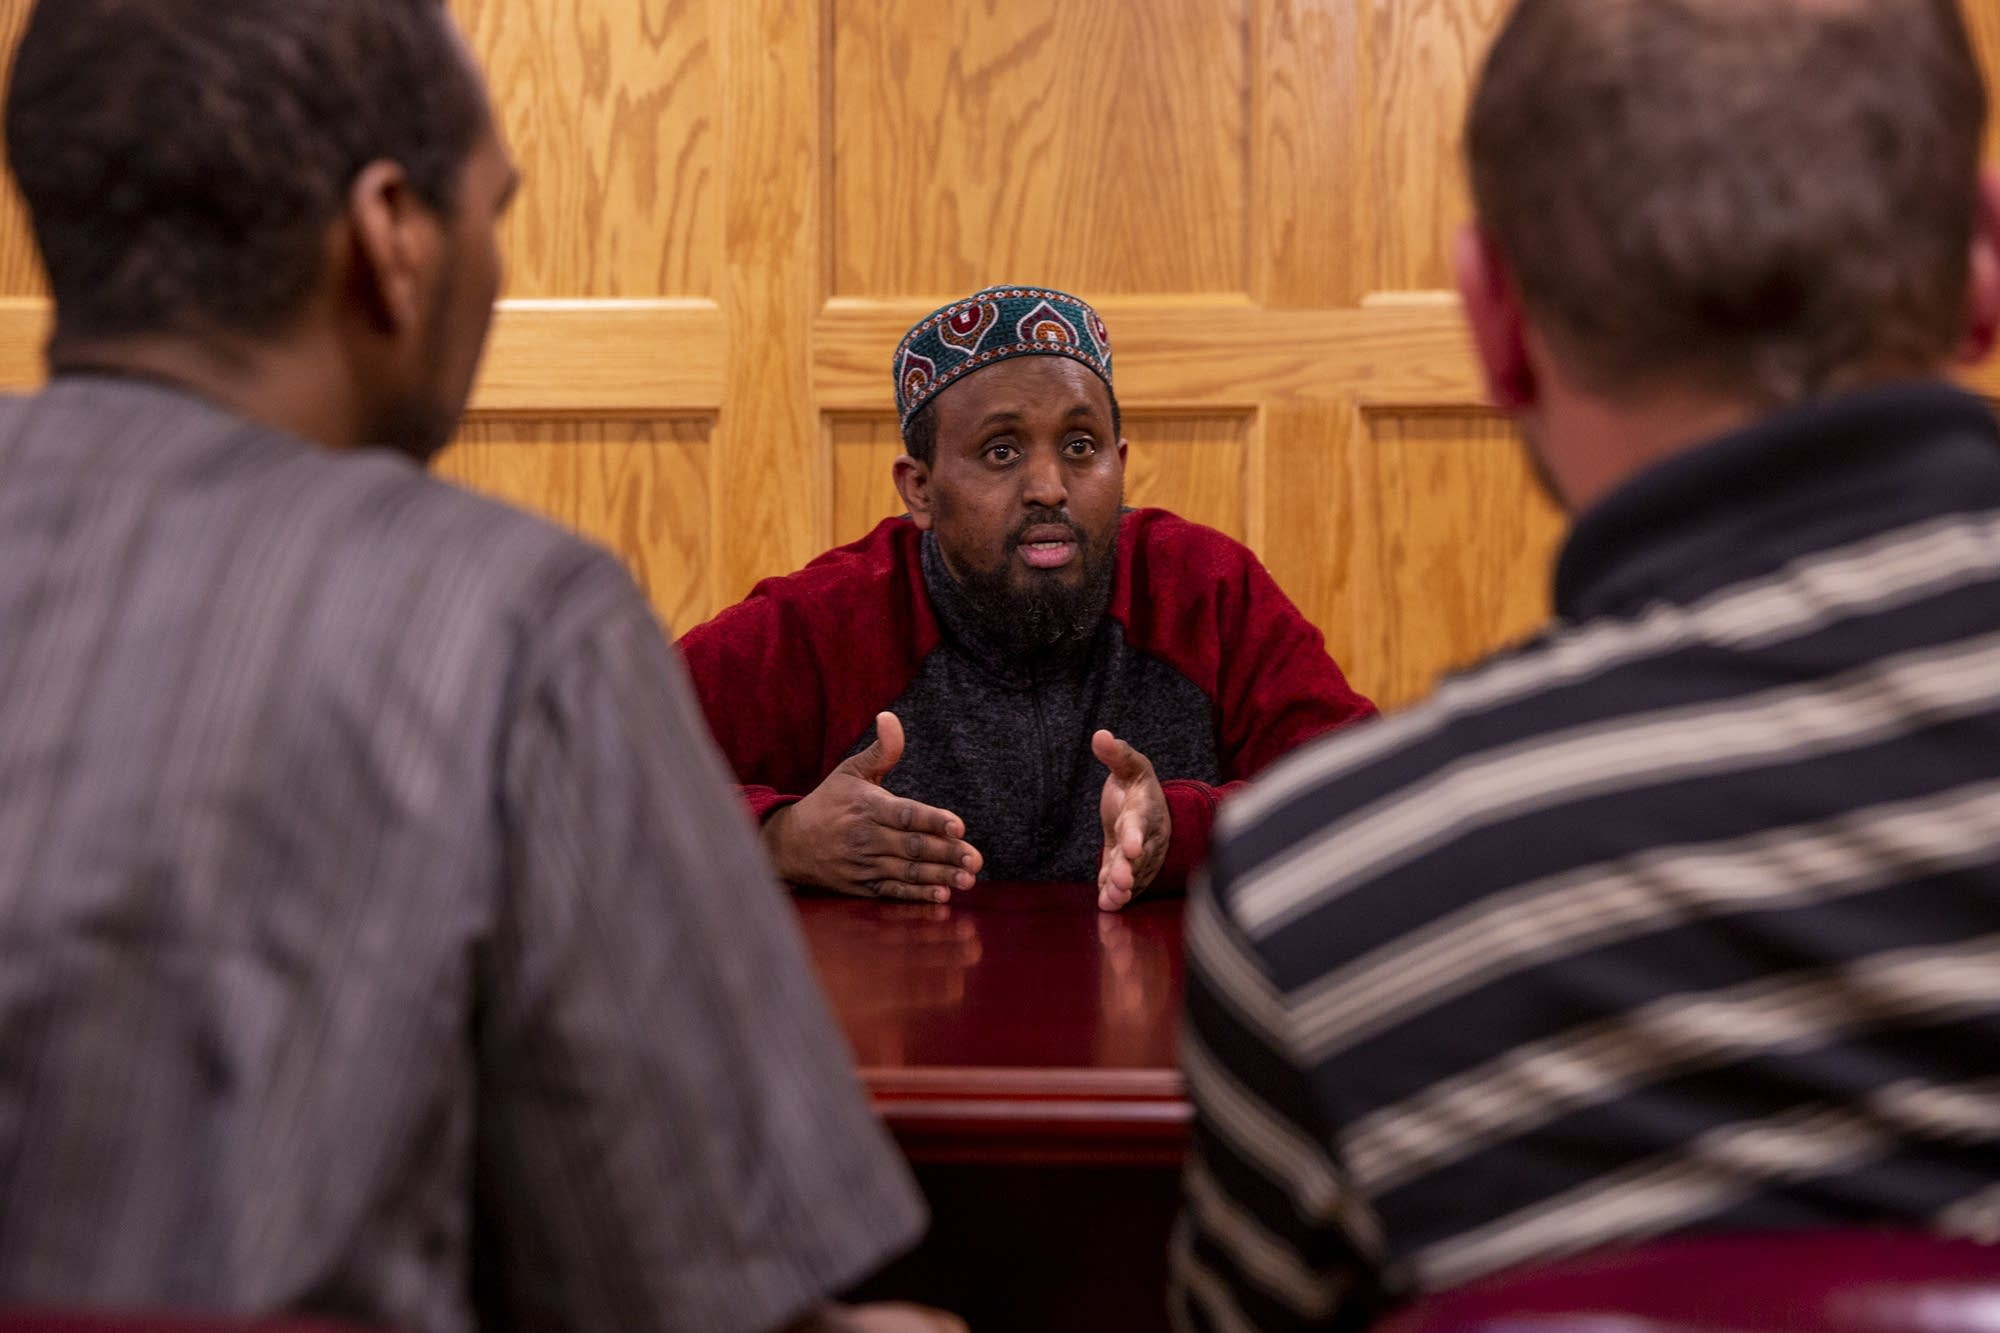 Imam Mohamed Omar speaks to Abdulahi Farah and Zavier Bicott.